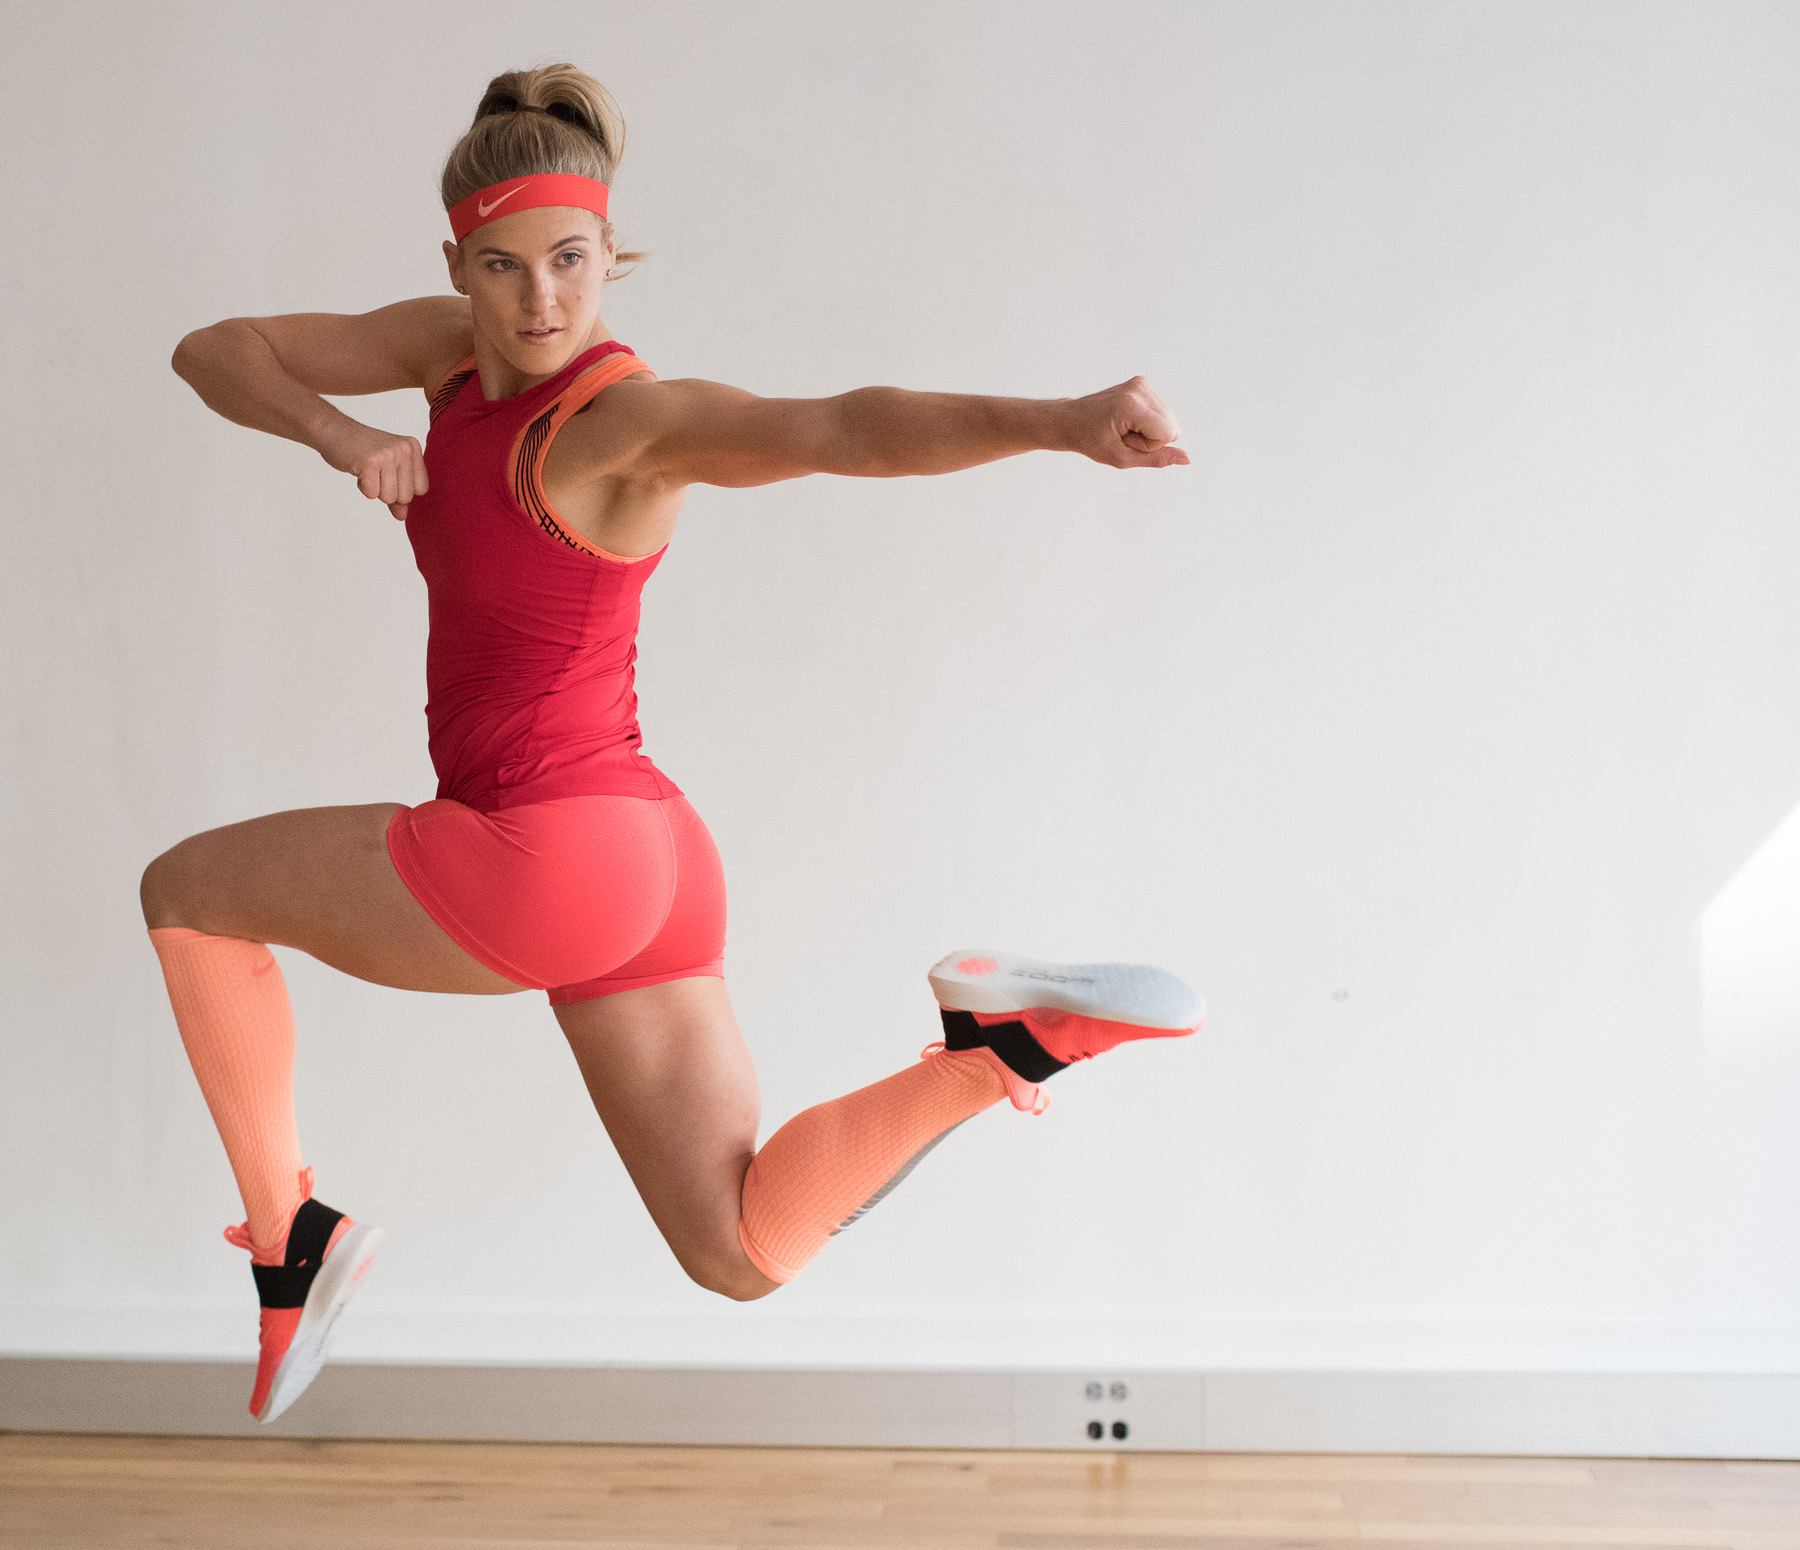 Ashley Barker Photographer Natural Nike NYC Jump Punch Strength Red Studio